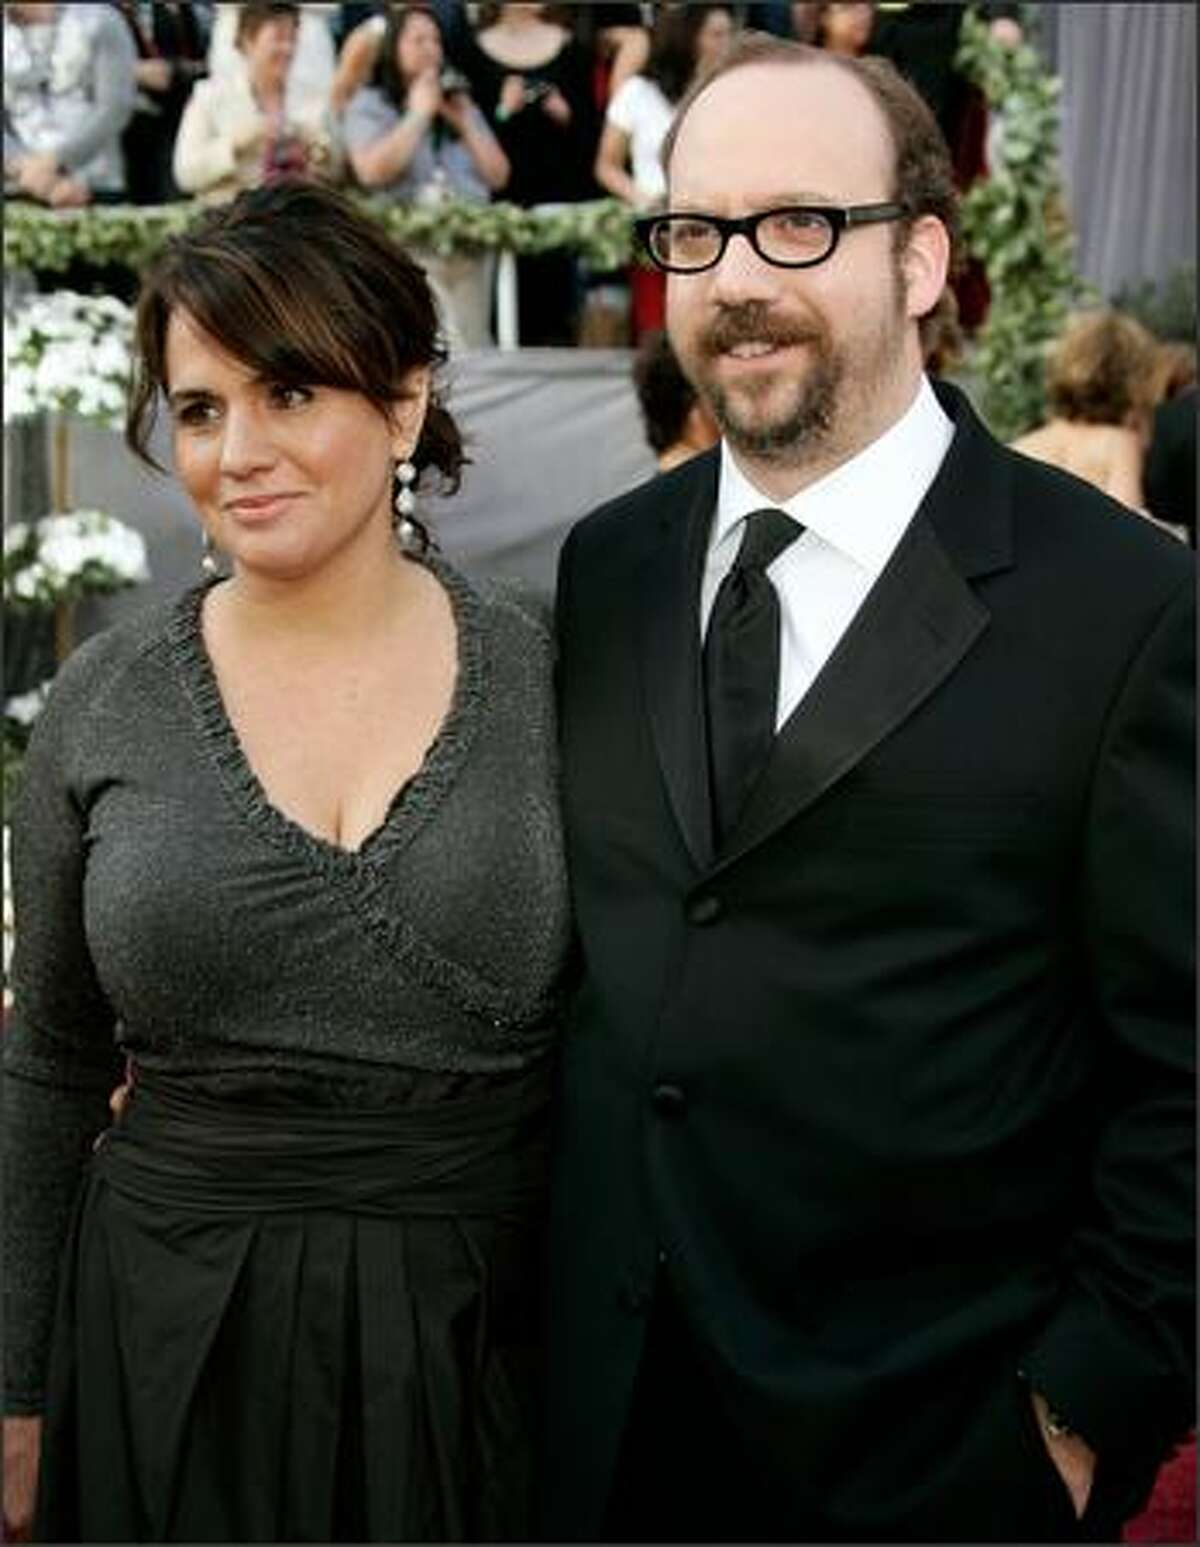 Paul Giamatti, nominated for an Oscar for best actor in a supporting role for his work in